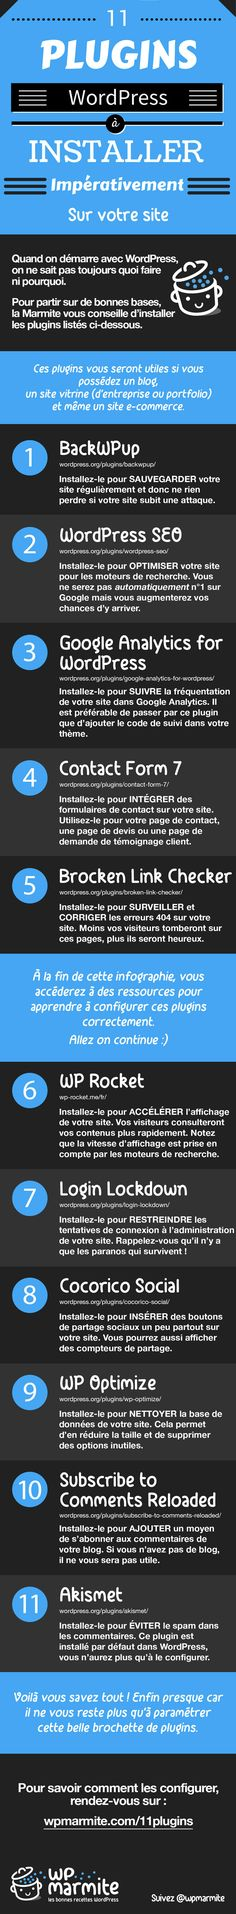 Infographie des meilleurs plugins WordPress More tips available on www.themepower.nl